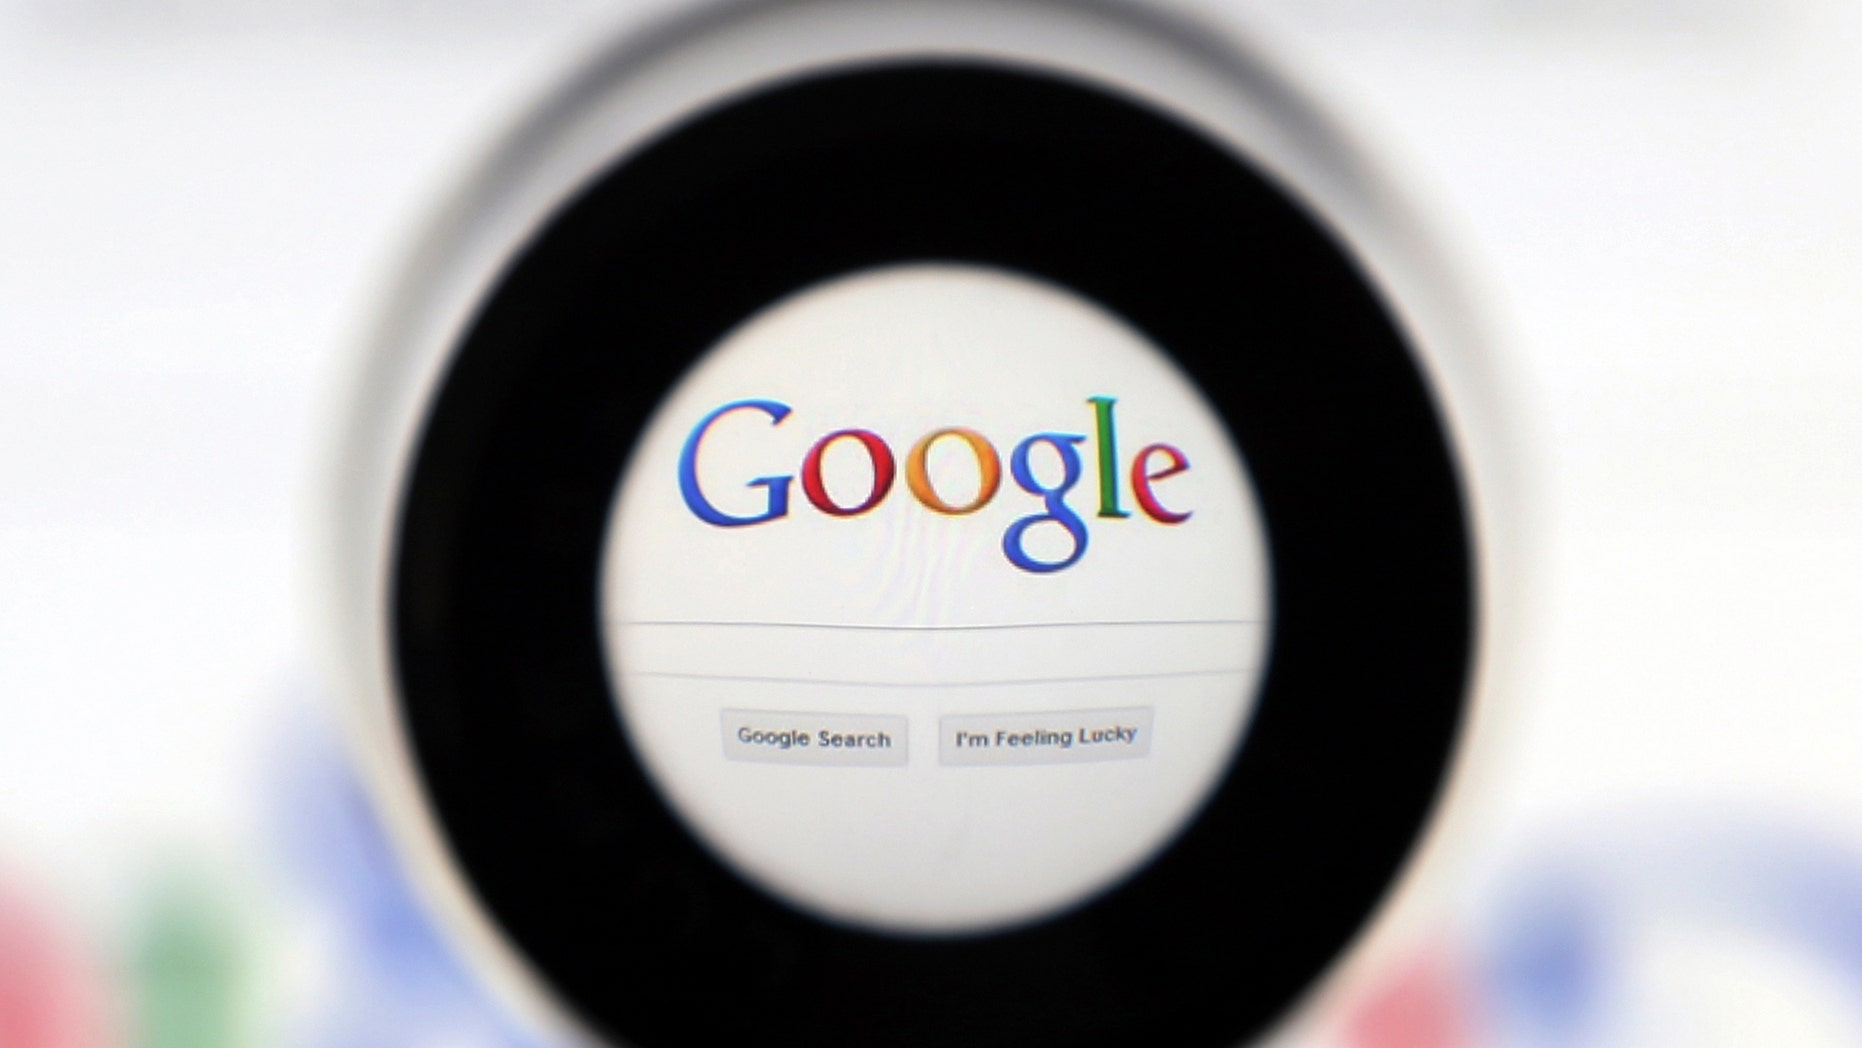 A Google search page is seen through a magnifying glass in this photo illustration taken in Brussels May 30, 2014. Google has taken the first steps to meet a European ruling that citizens can have objectionable links removed from Internet search results, a ruling that pleased privacy campaigners but raised fears that the right can be abused to hide negative information.   REUTERS/Francois Lenoir (BELGIUM - Tags: SCIENCE TECHNOLOGY POLITICS) - RTR3RK8U